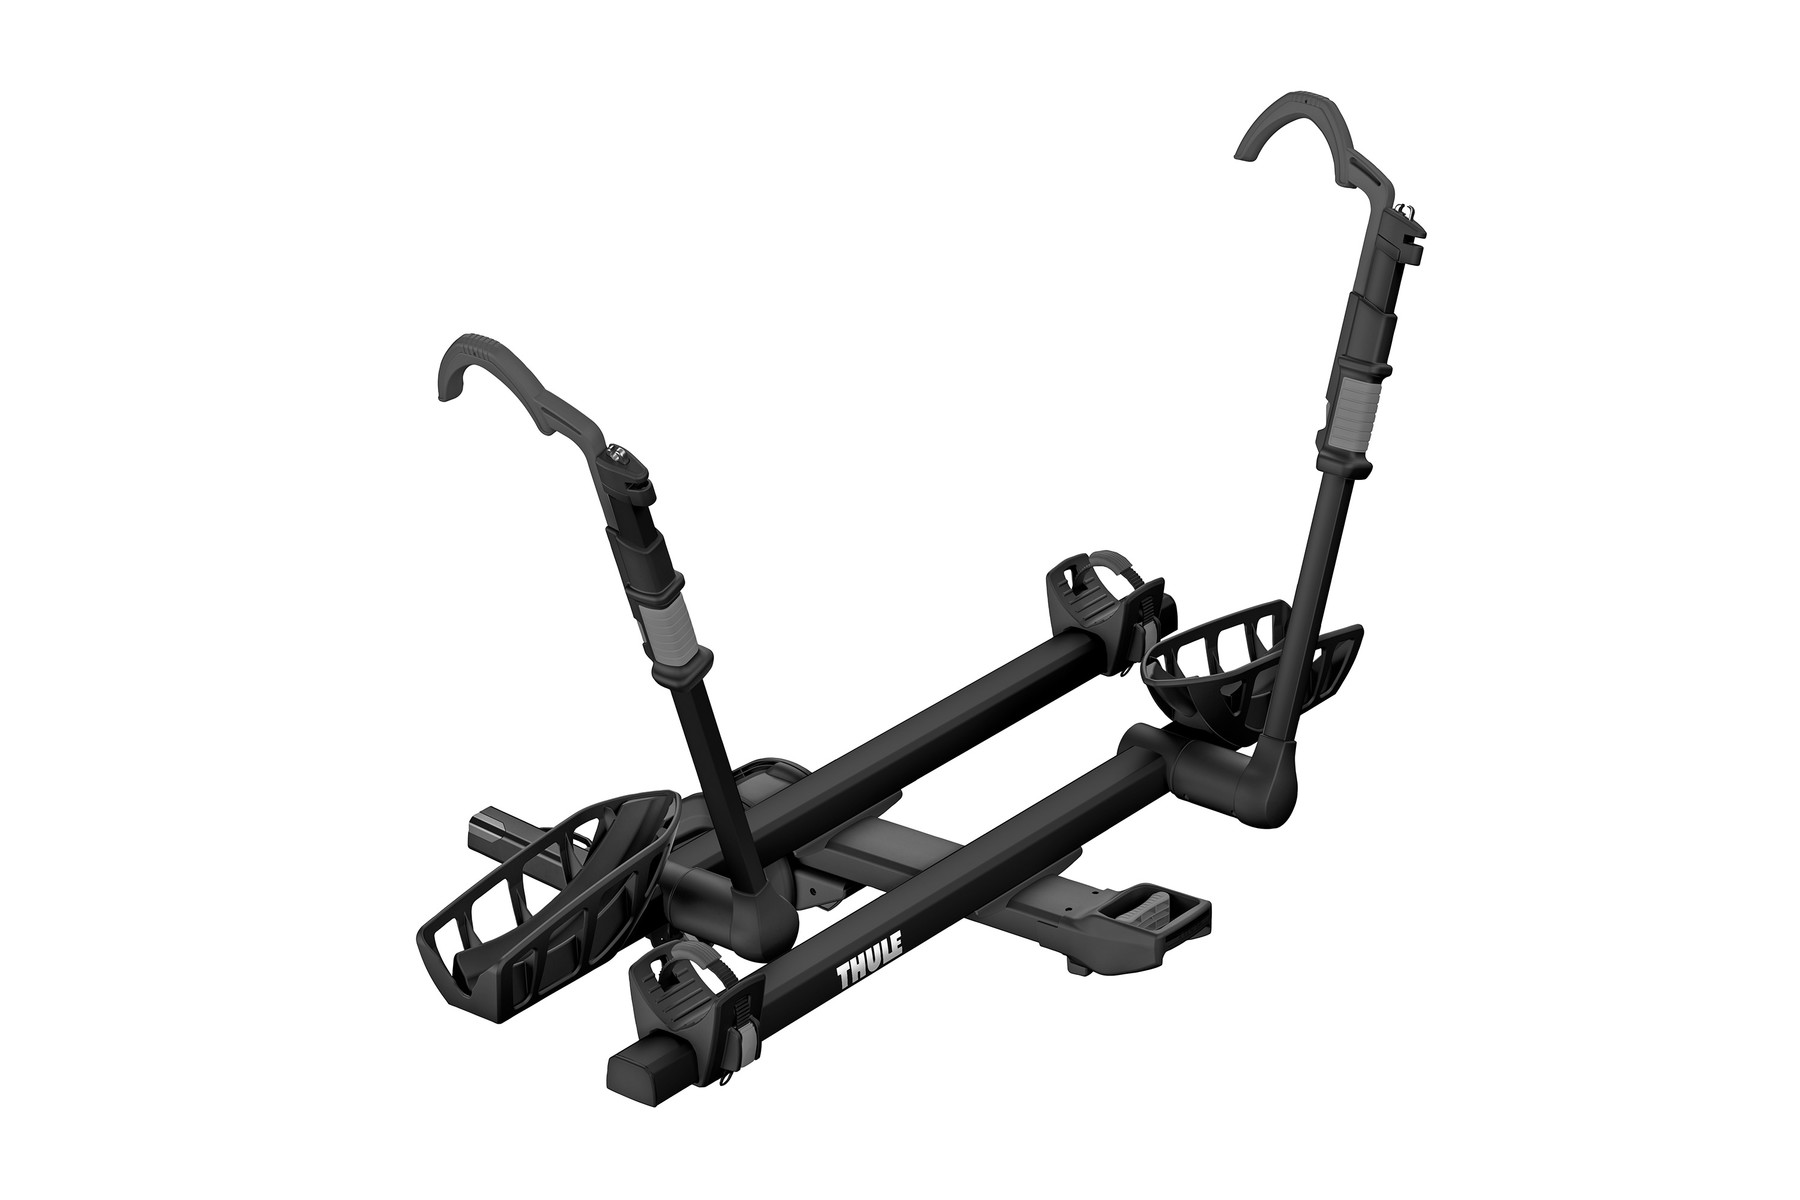 Hitch bike rack-Thule T2 Pro XT 9035XT